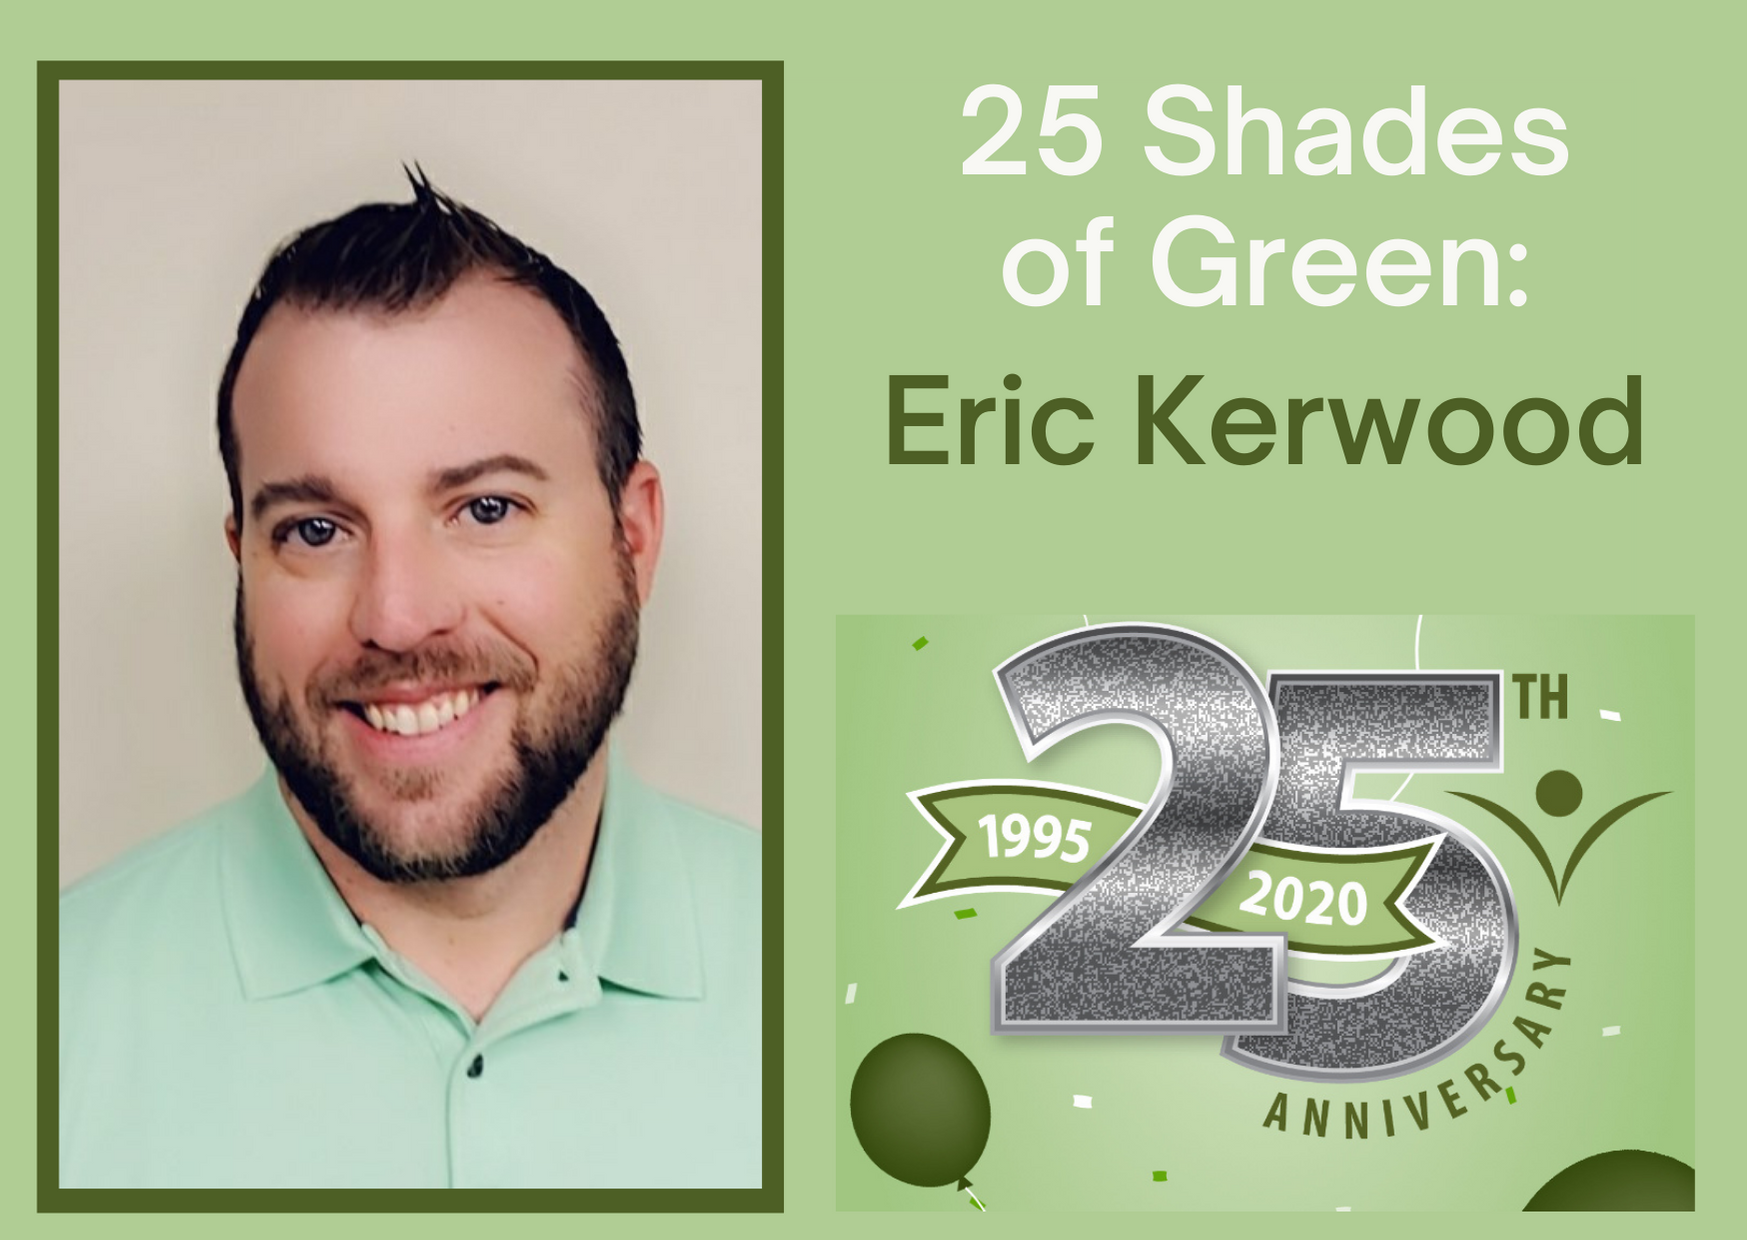 Eric Kerwood Shades of Green 25.png